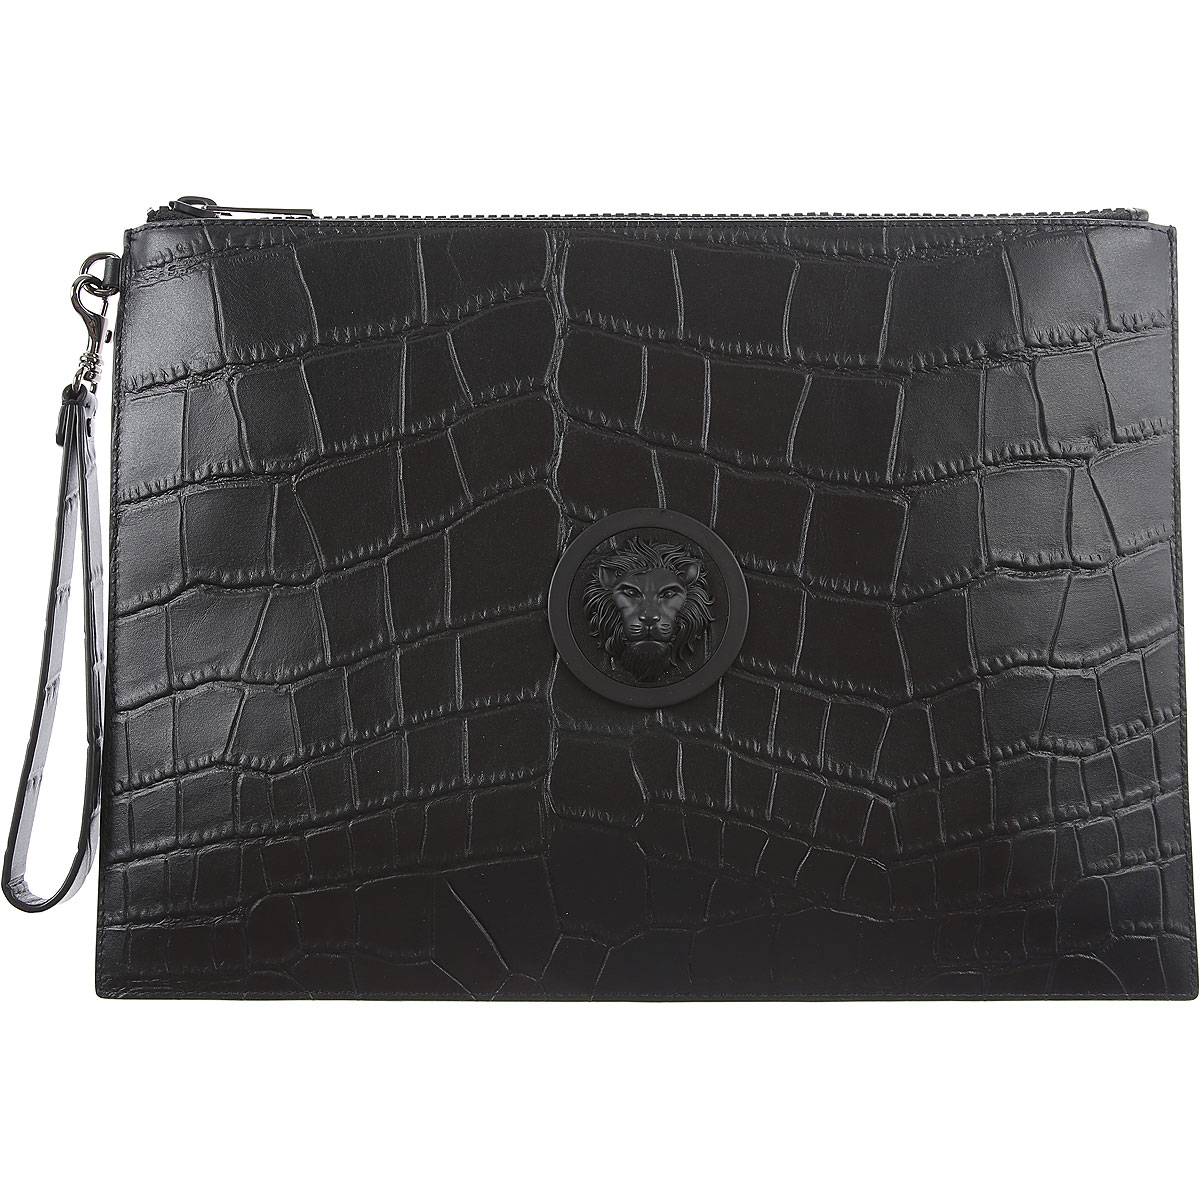 Versace Pouches in Outlet Black USA - GOOFASH